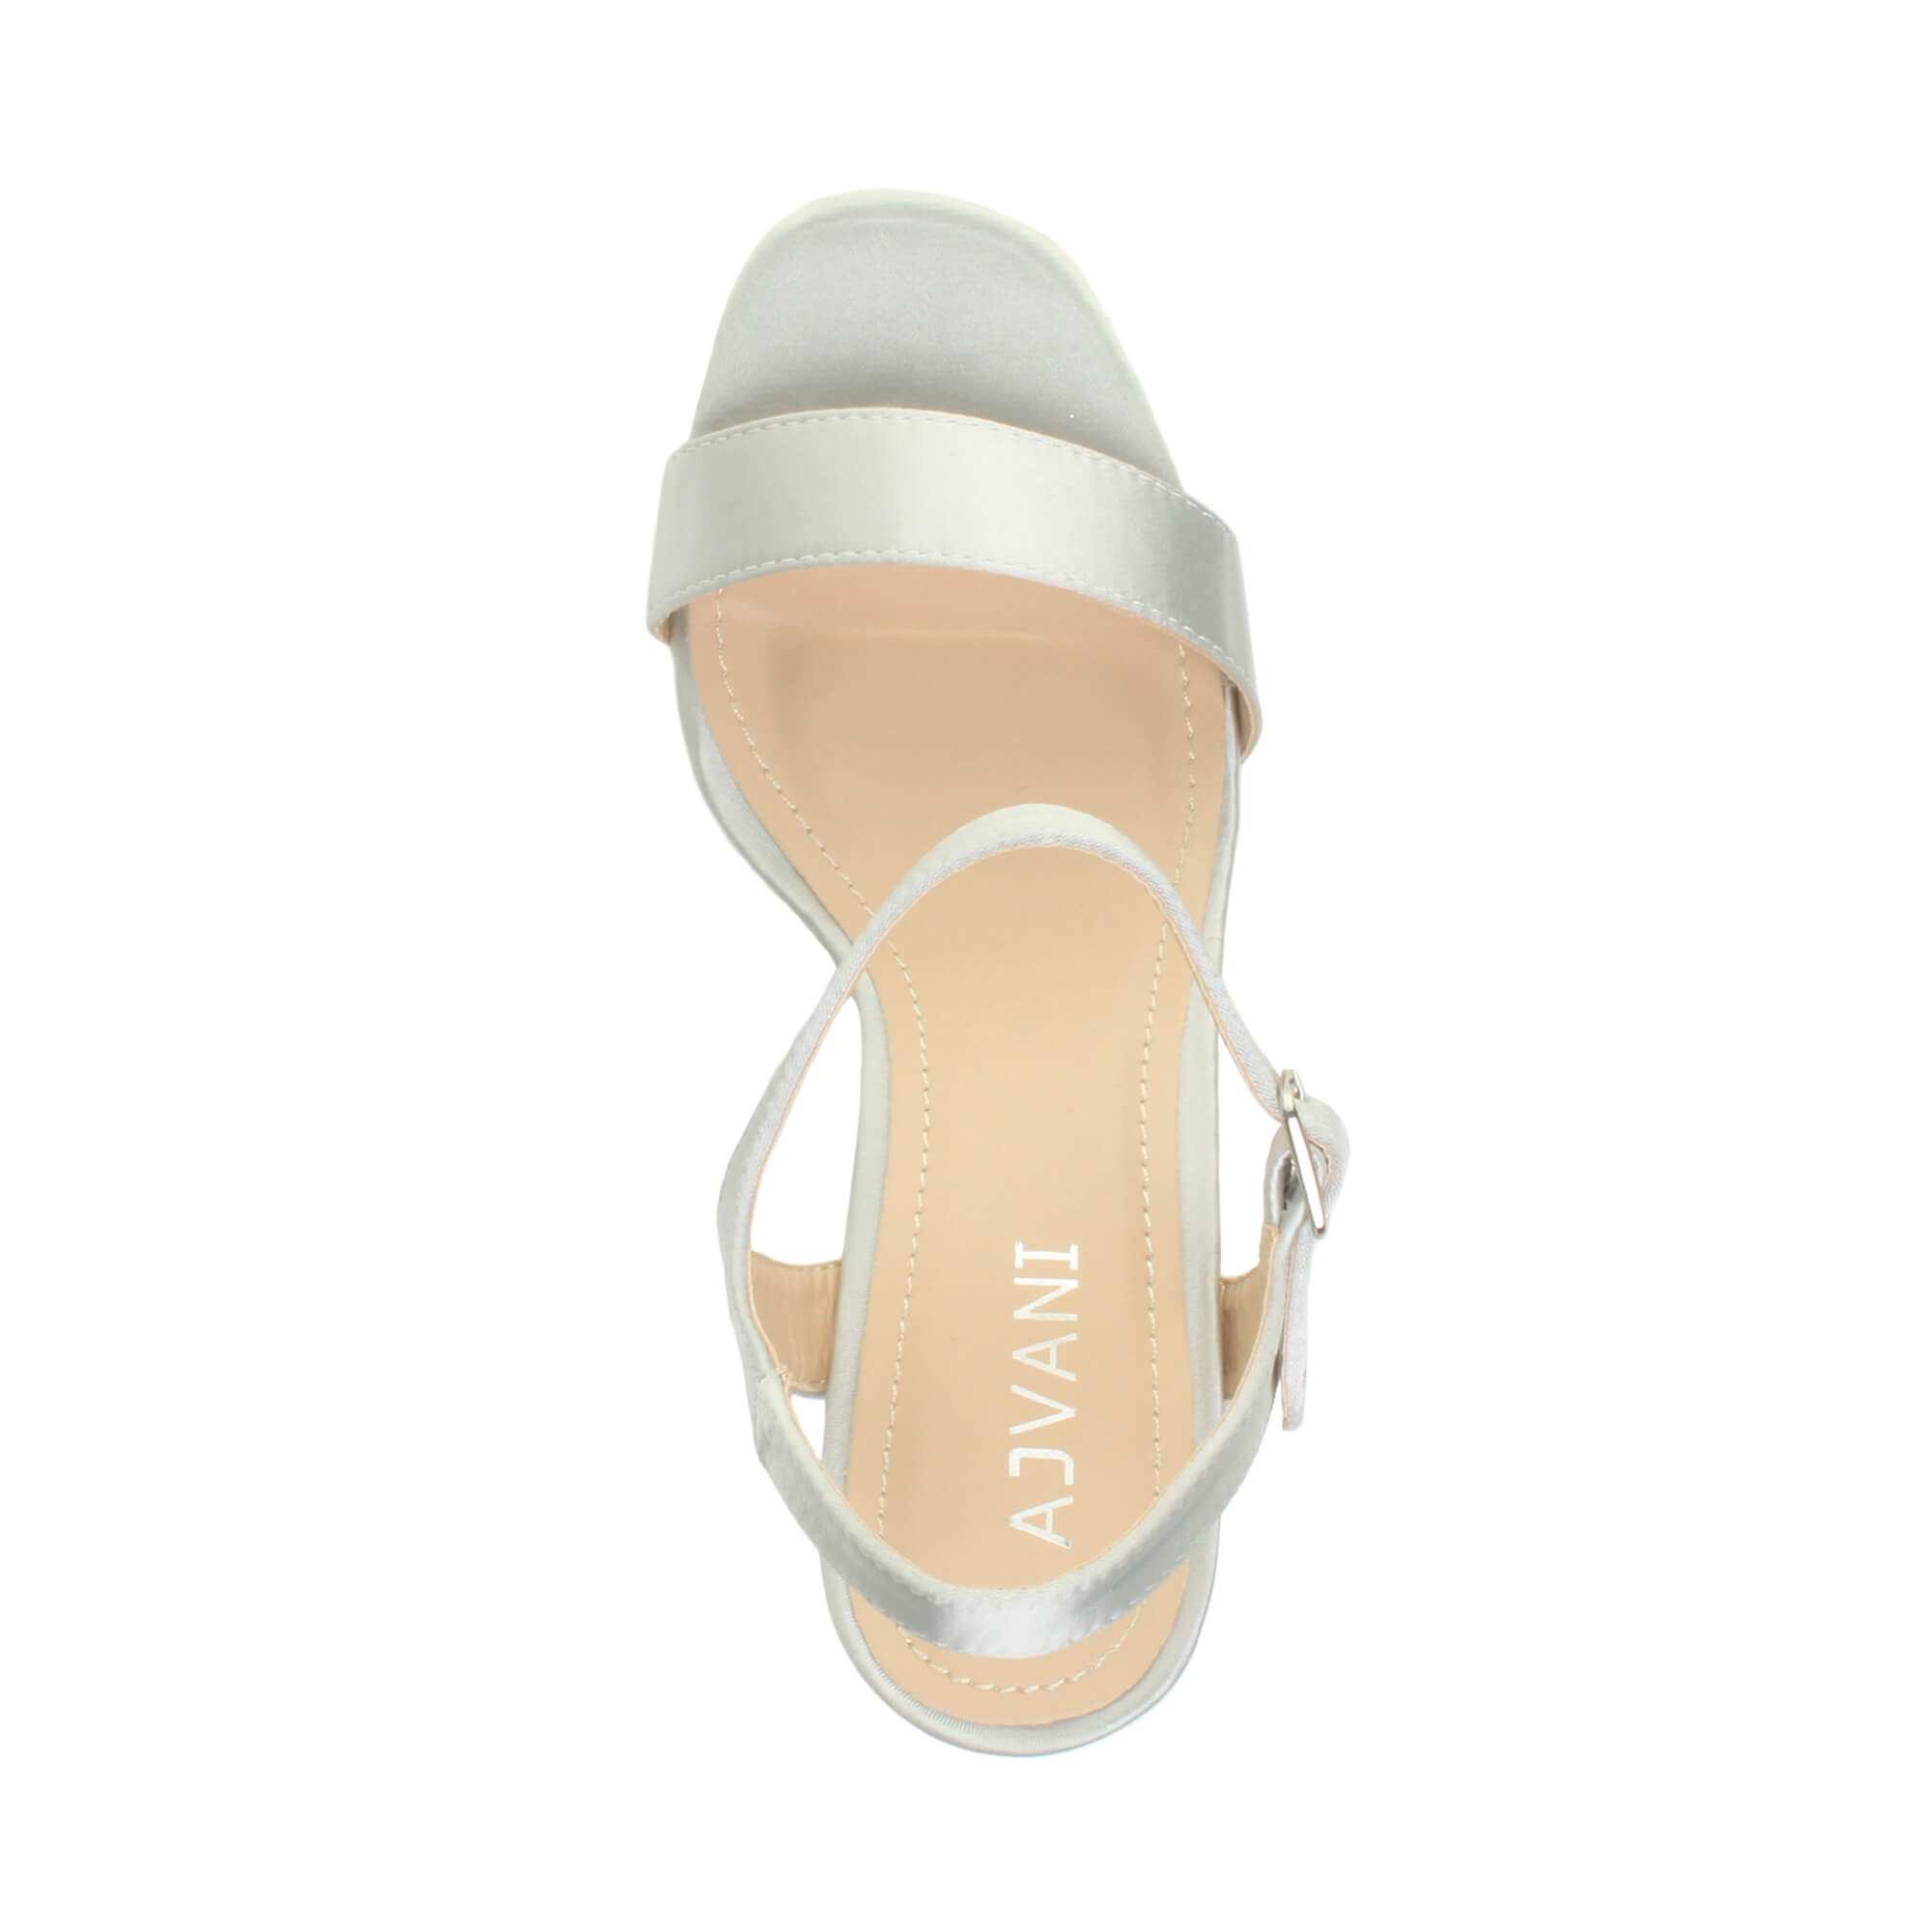 WOMENS-LADIES-HIGH-HEEL-BUCKLE-STRAPPY-BASIC-BARELY-THERE-SANDALS-SHOES-SIZE thumbnail 140